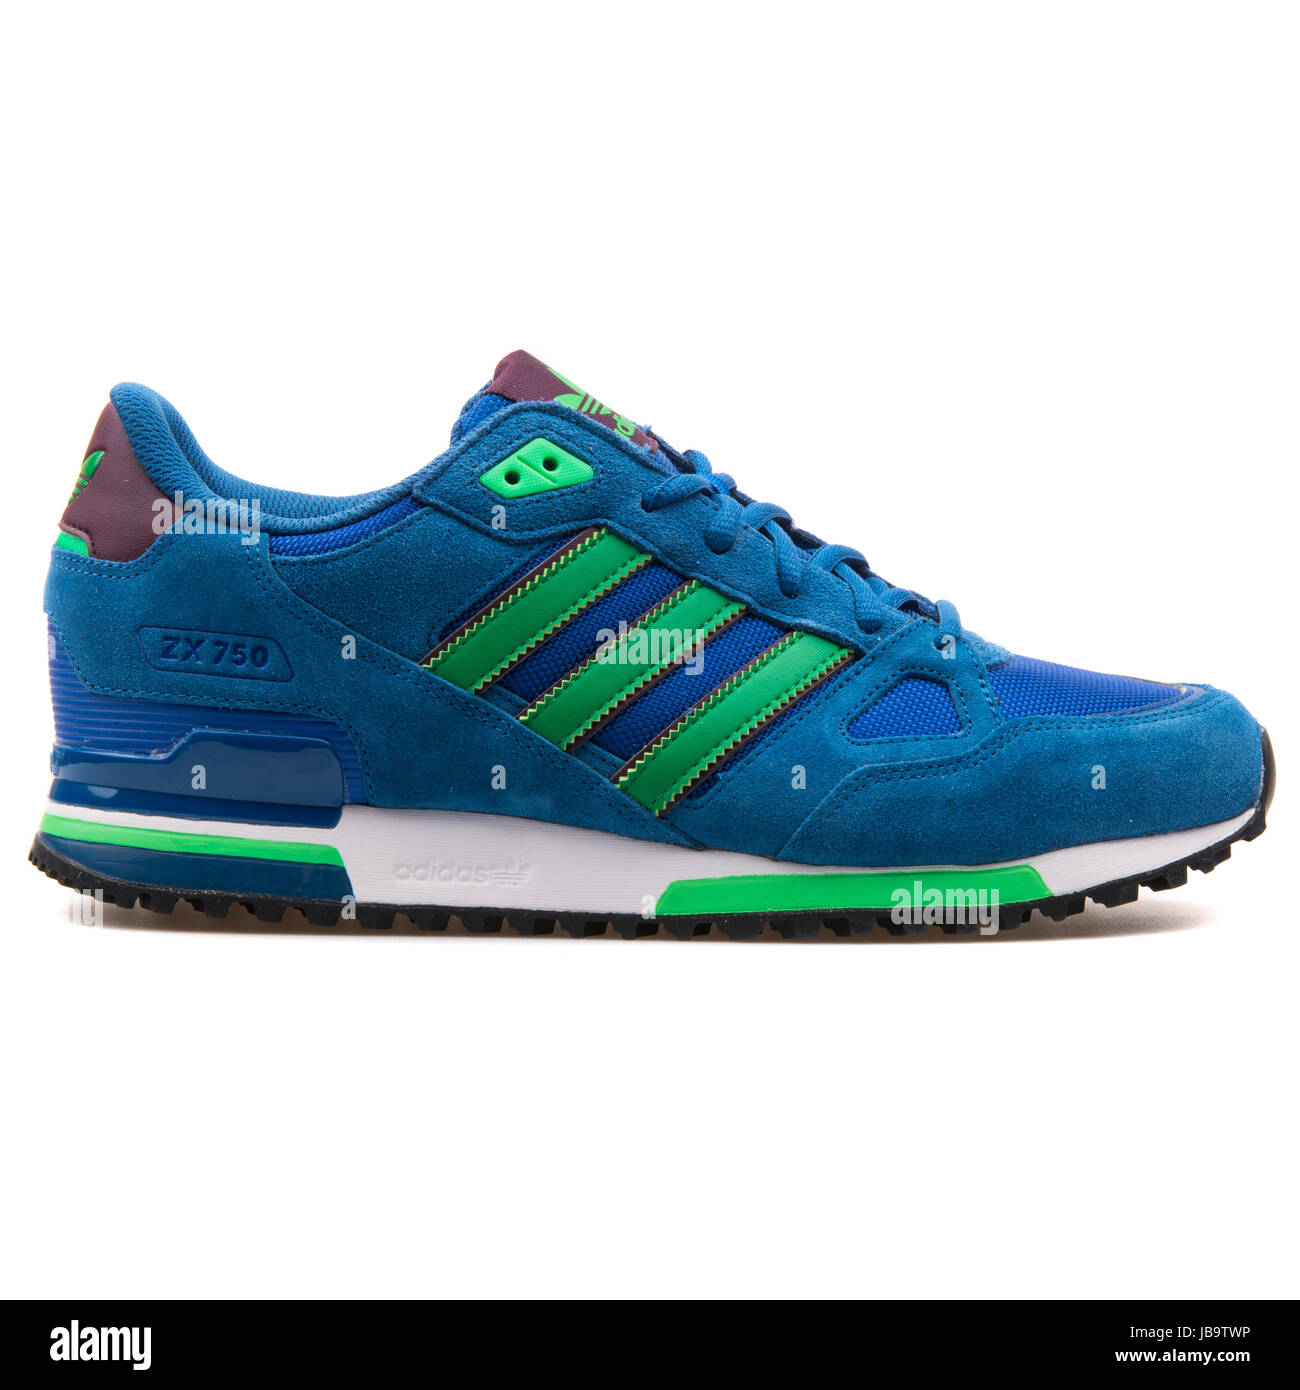 newest 129a9 0f0c7 Adidas ZX 750 Blue and Green Men's Sports Sneakers - B24857 ...